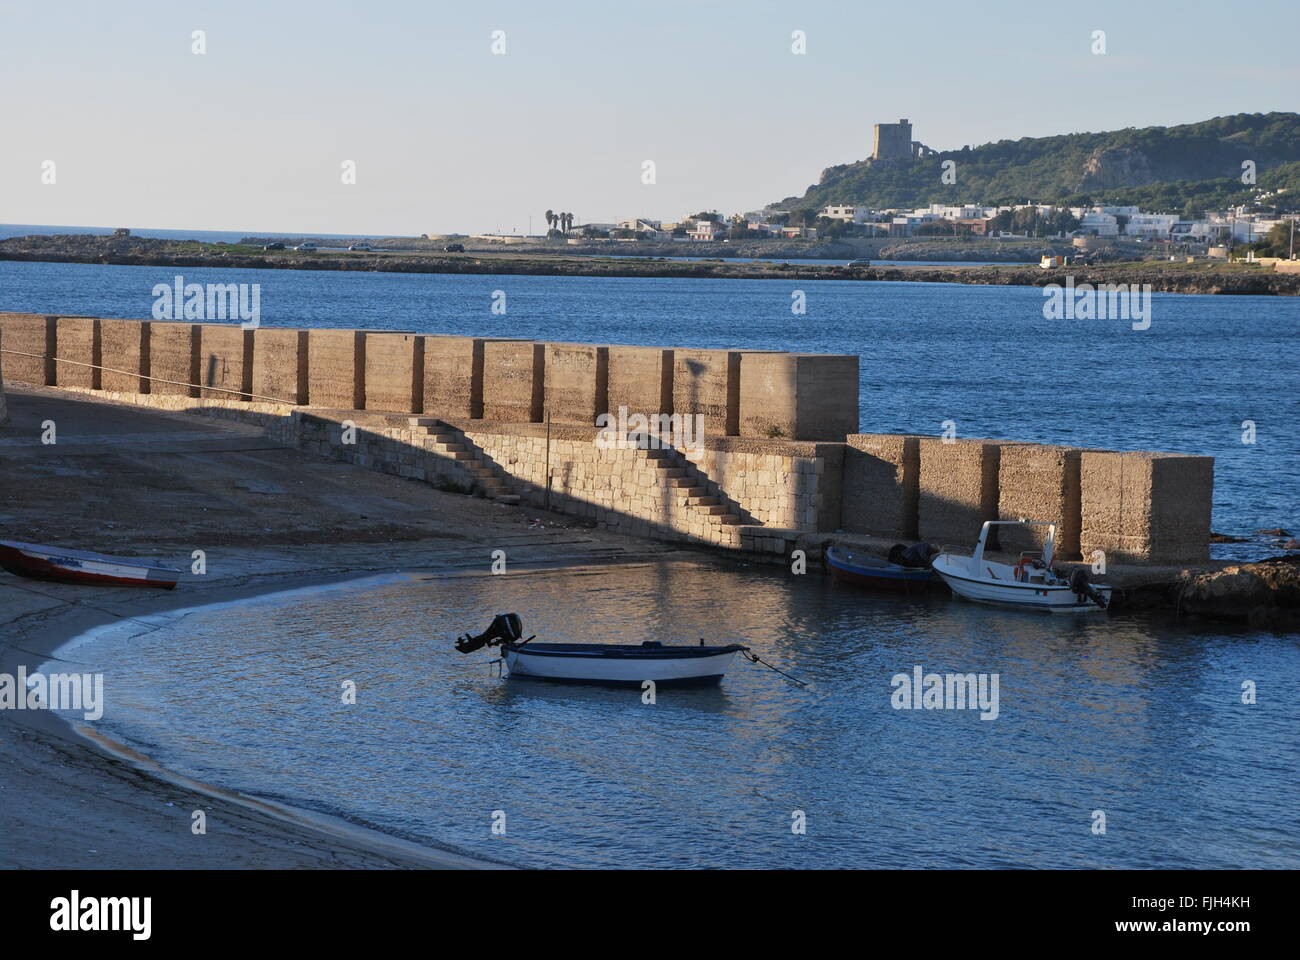 Santa Maria Al Bagno Lecce Nardo Italy Stock Photos And Nardo Italy Stock Images Alamy